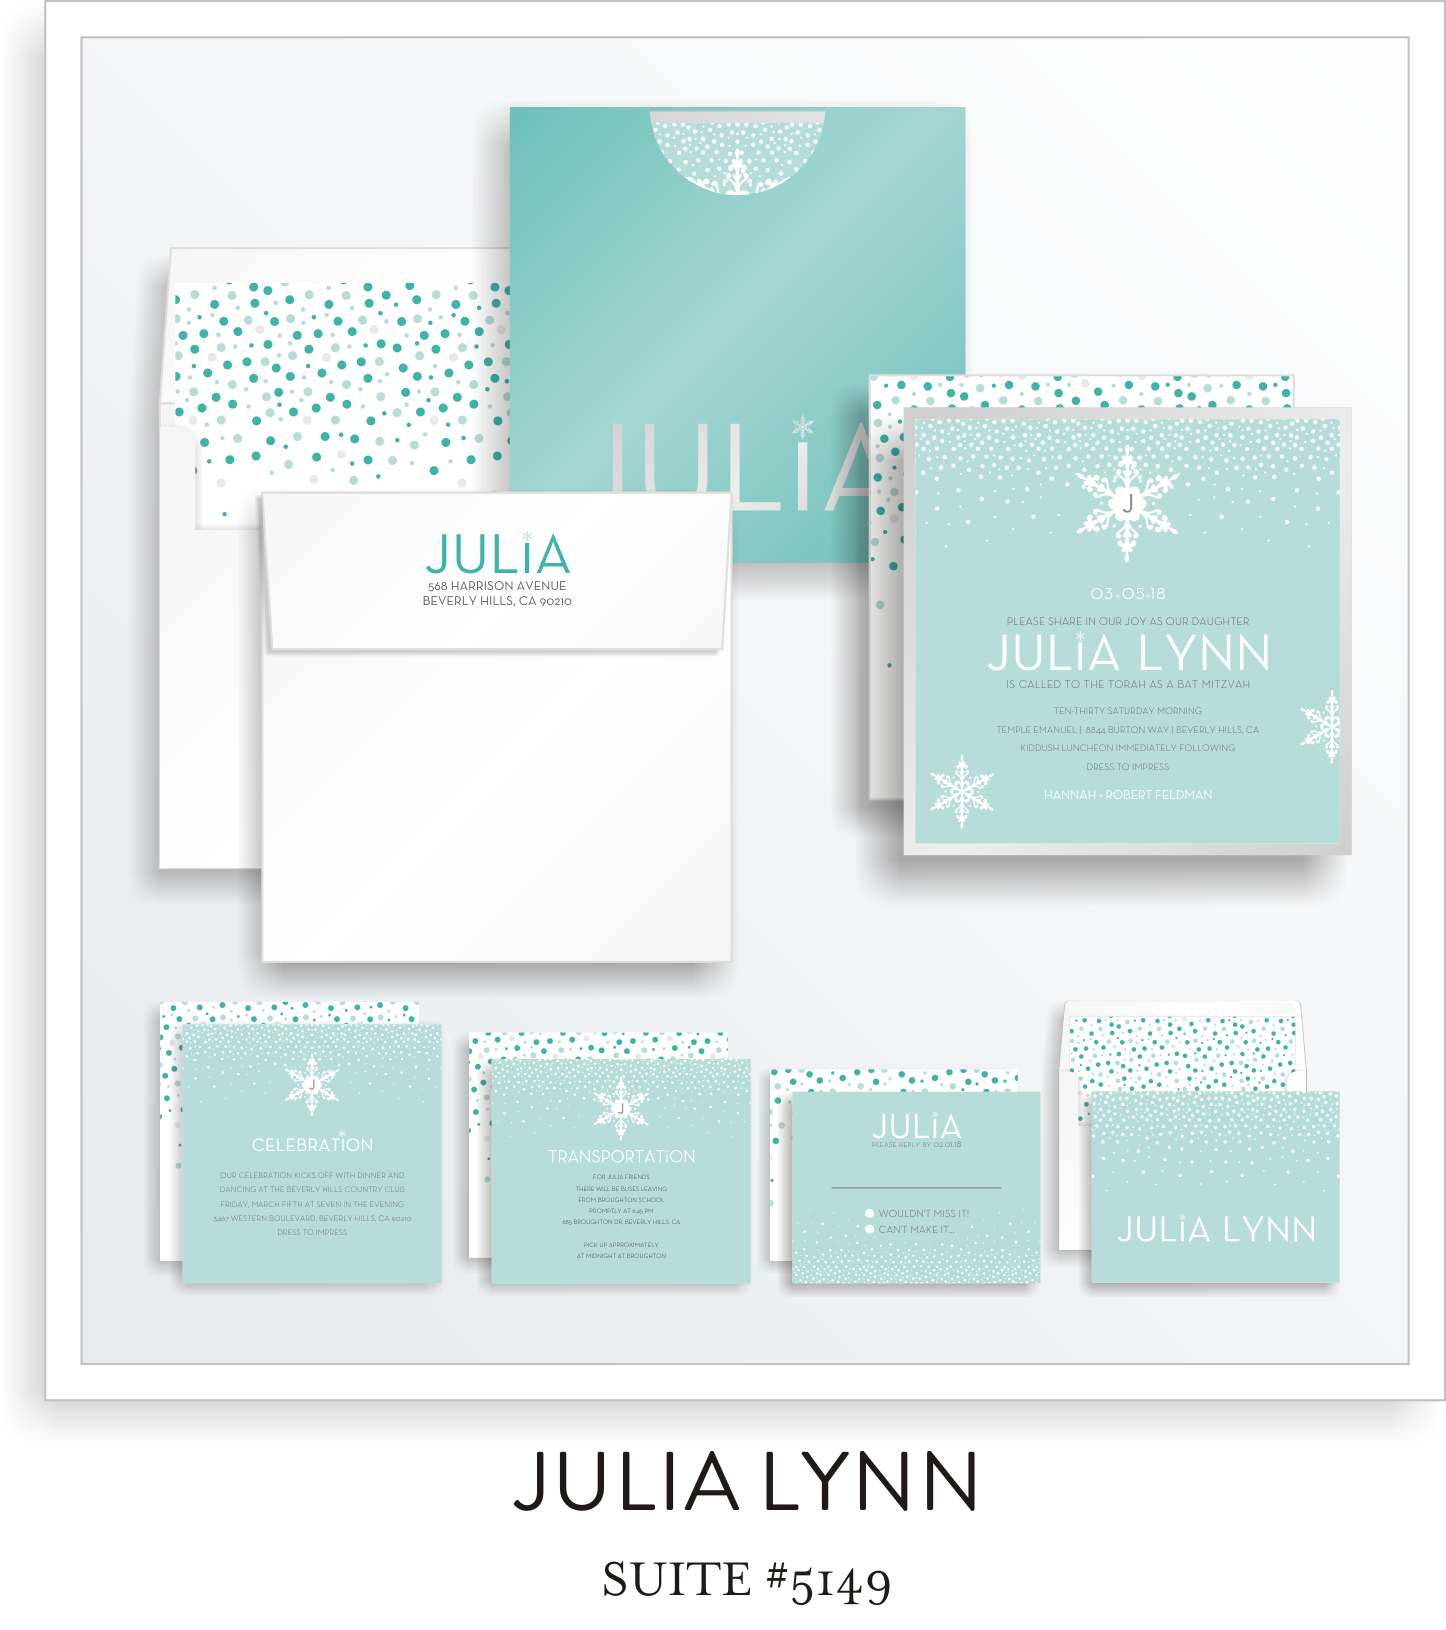 Bat Mitzvah Invitation Suite 5149 - Julia Lynn